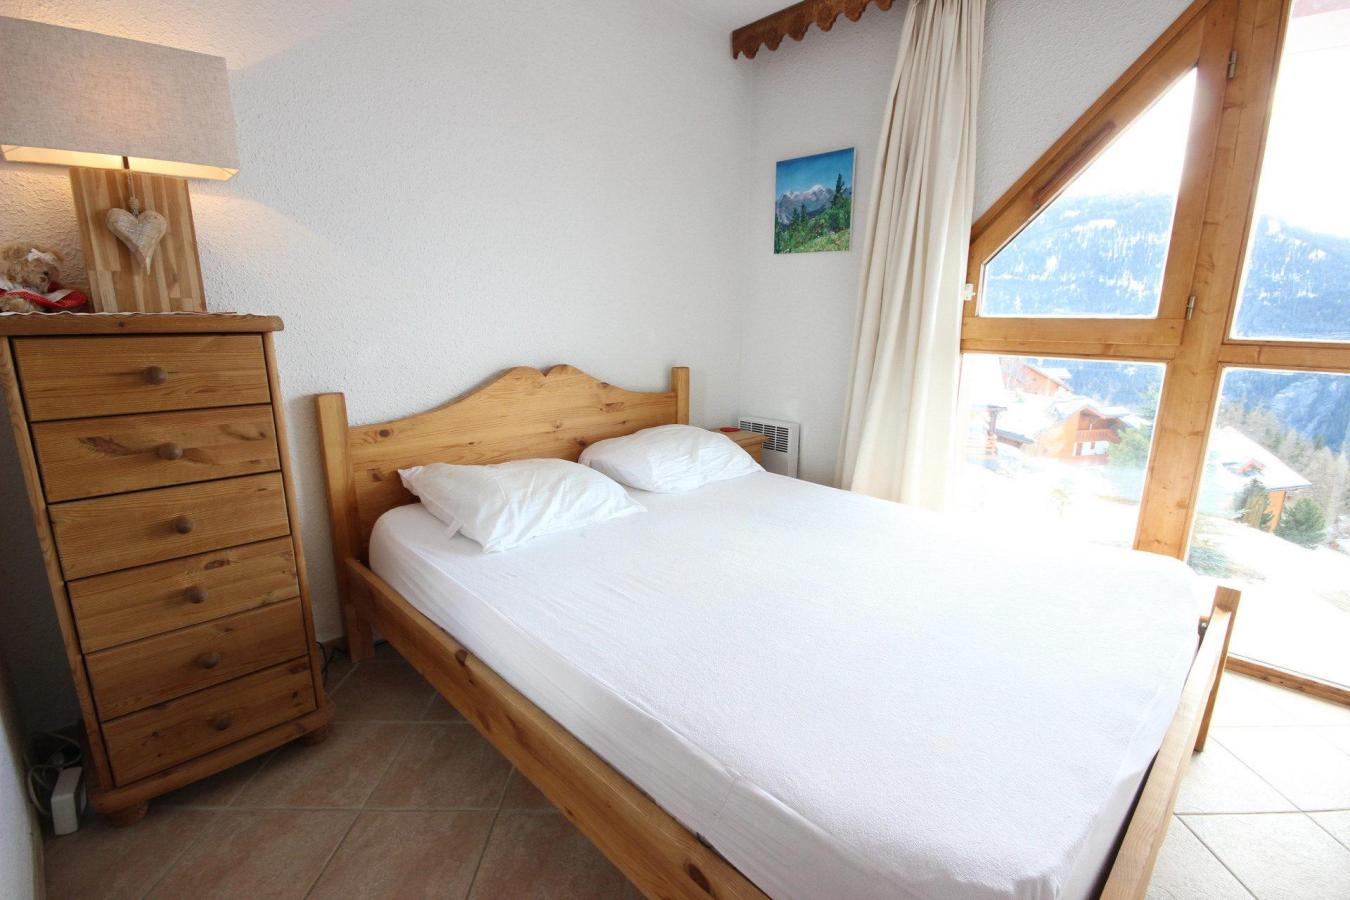 Location au ski Appartement 3 pièces cabine 7 personnes - Residence Petite Ourse A - Peisey-Vallandry